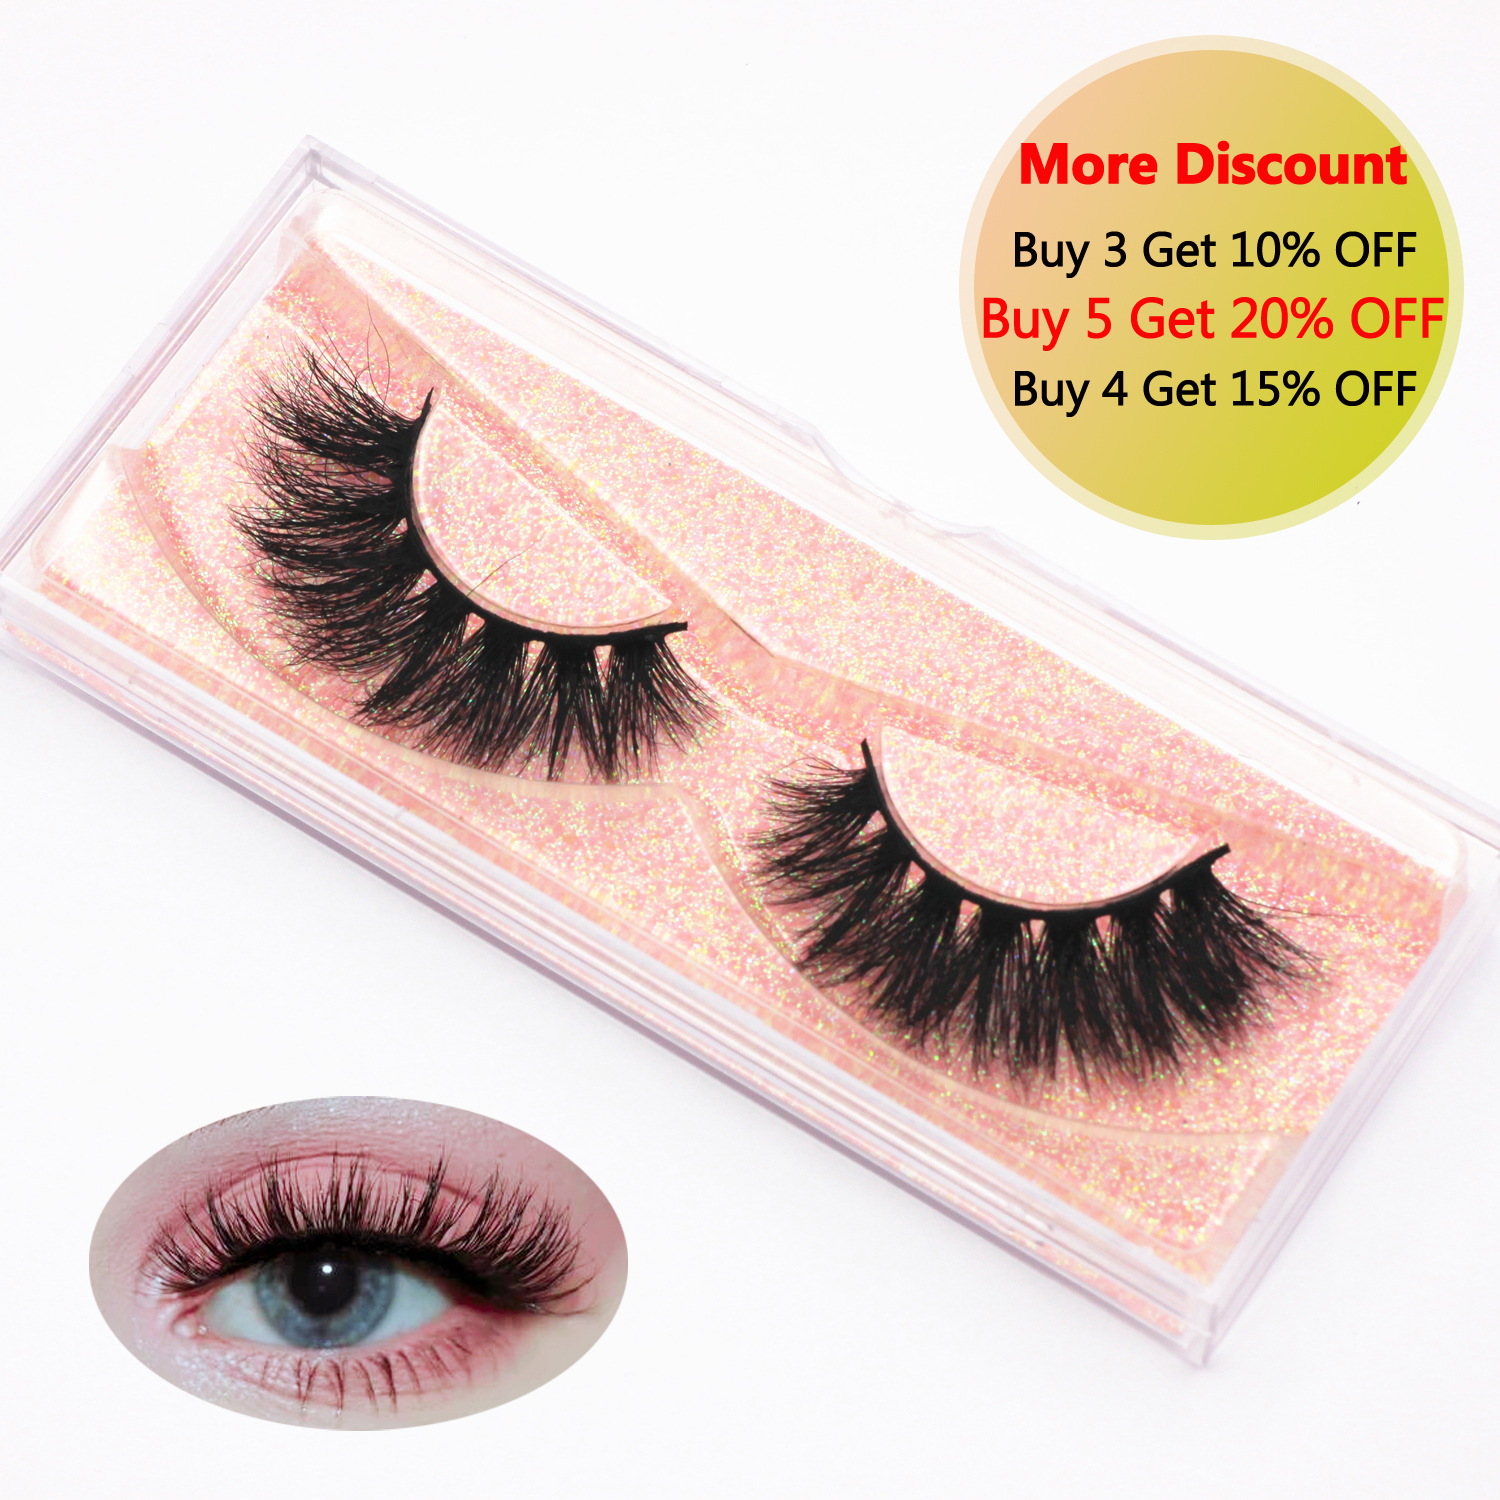 KEKEBAICHA 100% Mink Eyelashes Crisscross False Eyelashes Fake Eye Lashes Long Makeup 3D Mink Lashes Extension Eyelash E04 Lash